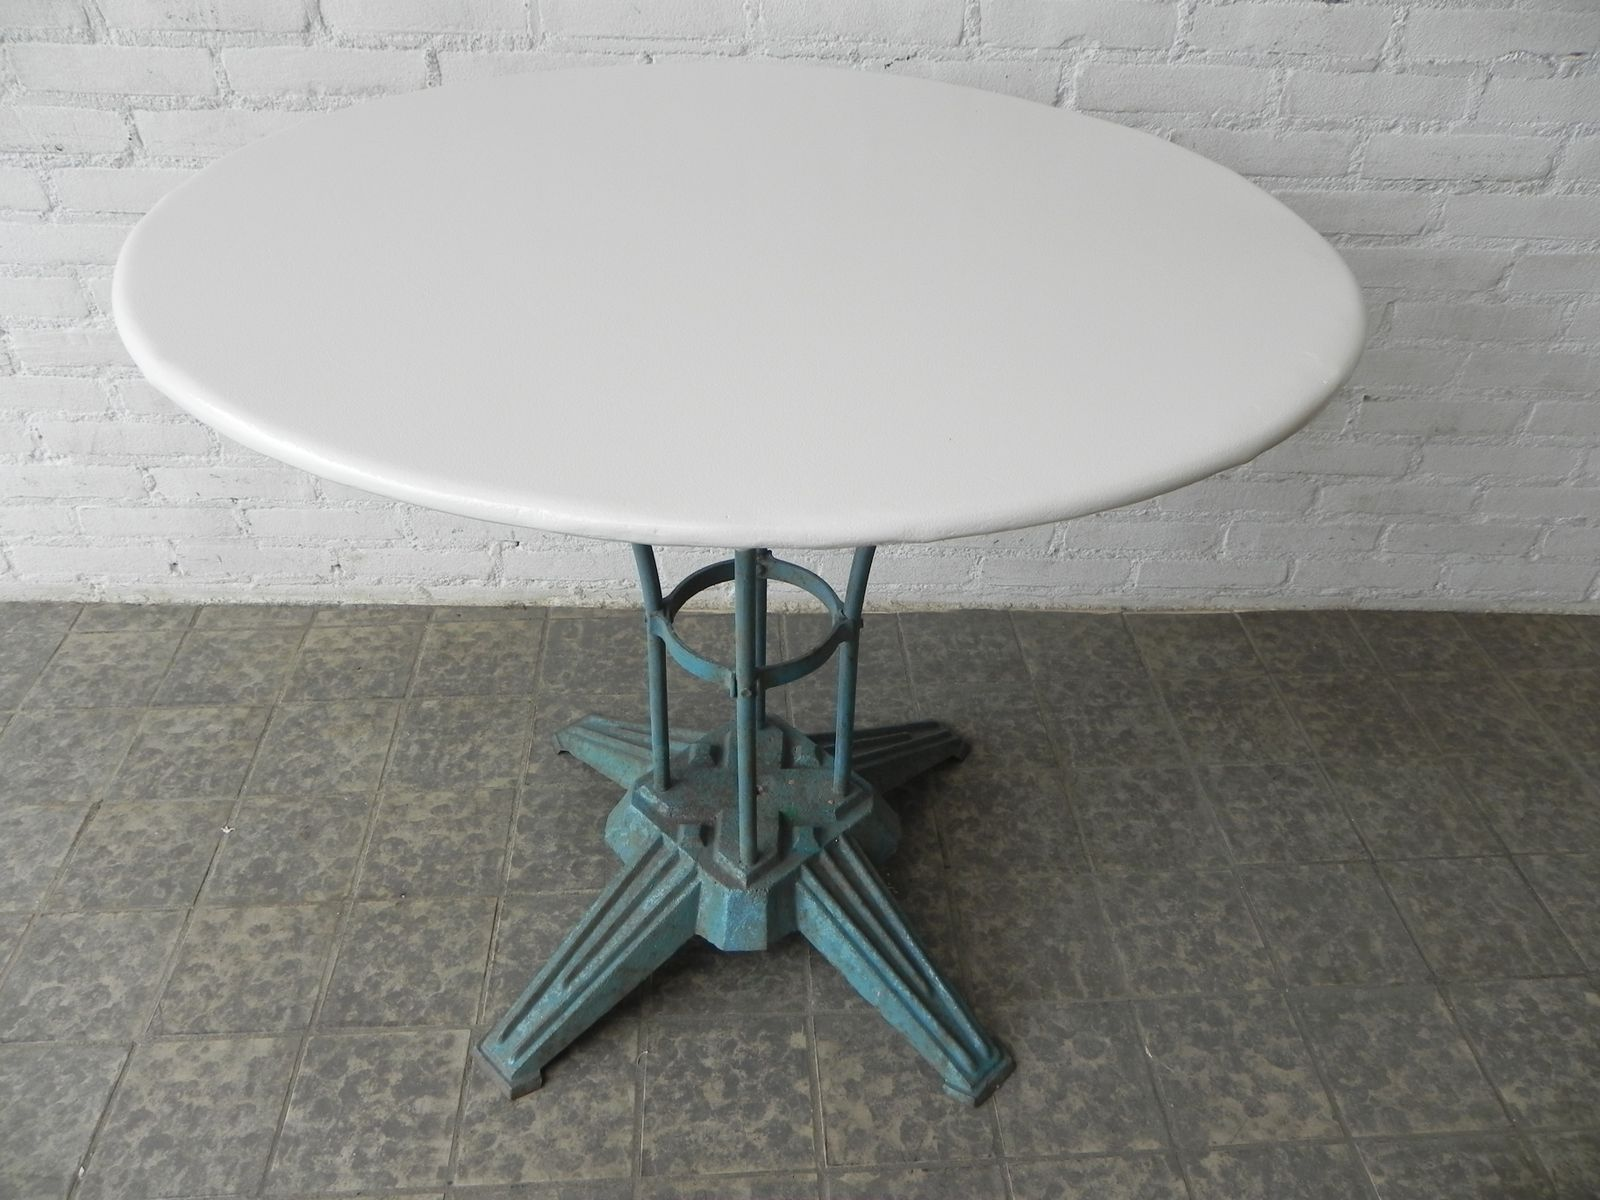 art deco french steel garden table with cast iron foot for sale at pamono. Black Bedroom Furniture Sets. Home Design Ideas